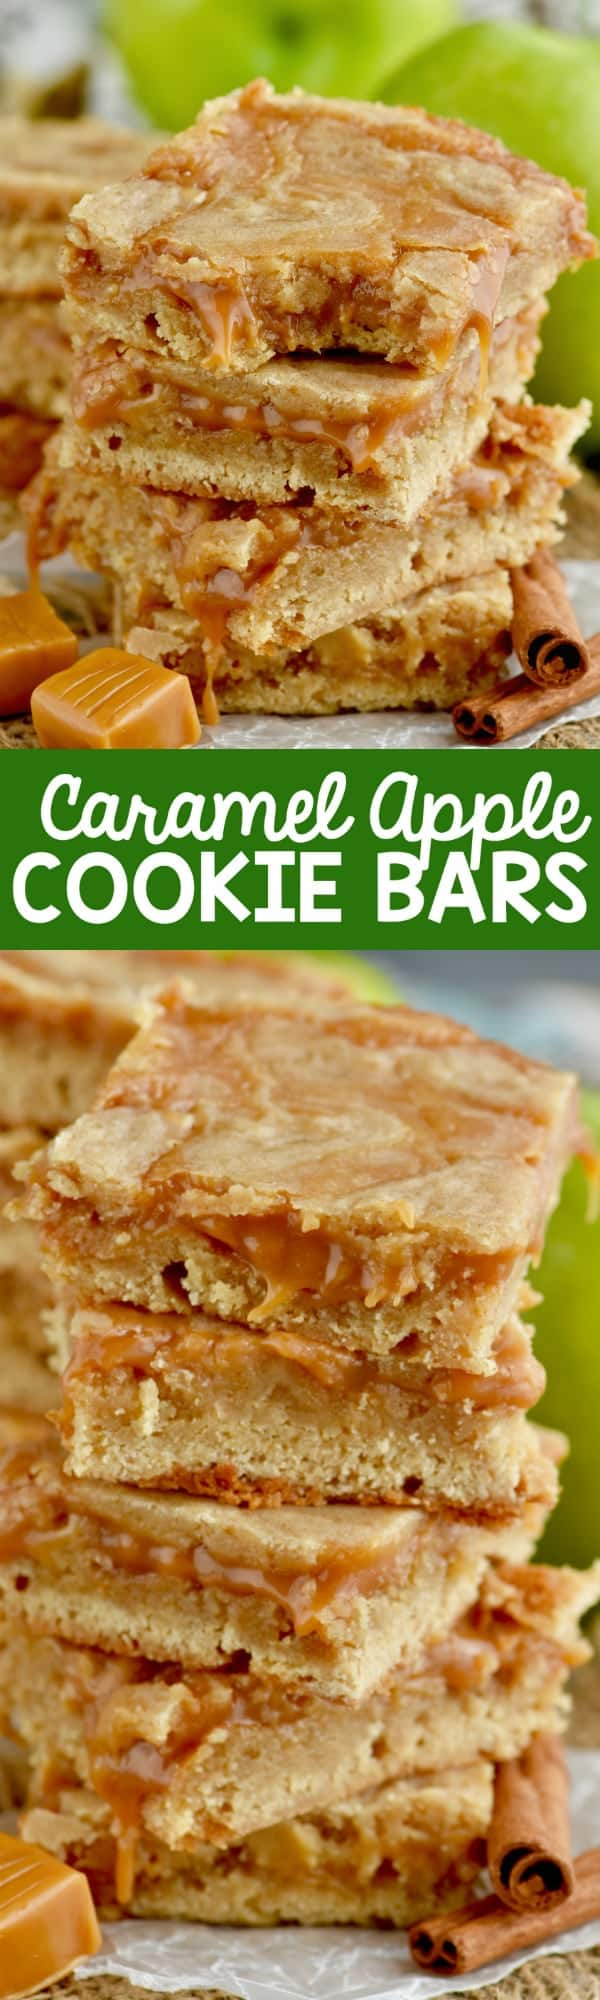 A stack of the Caramel Apple bars that have a beautiful golden brown color and caramel oozing out.